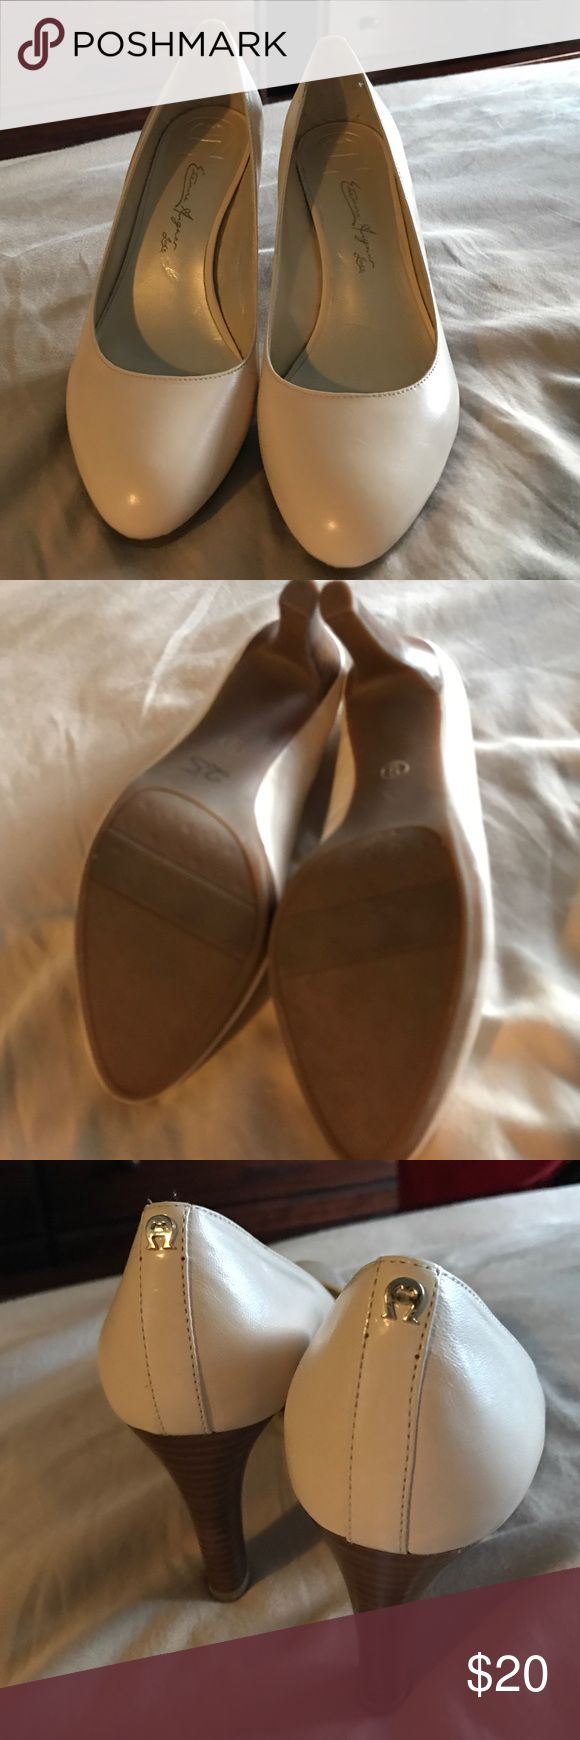 "Etienne Aigner Lux Cream Leather Platform Pumps 3.5 Wooden heels, with 1/5"" platform. Comfy cushion insoles. I love these shoes, but I need a wide. They are in great condition. Worn once. Etienne Aigner Shoes Platforms"